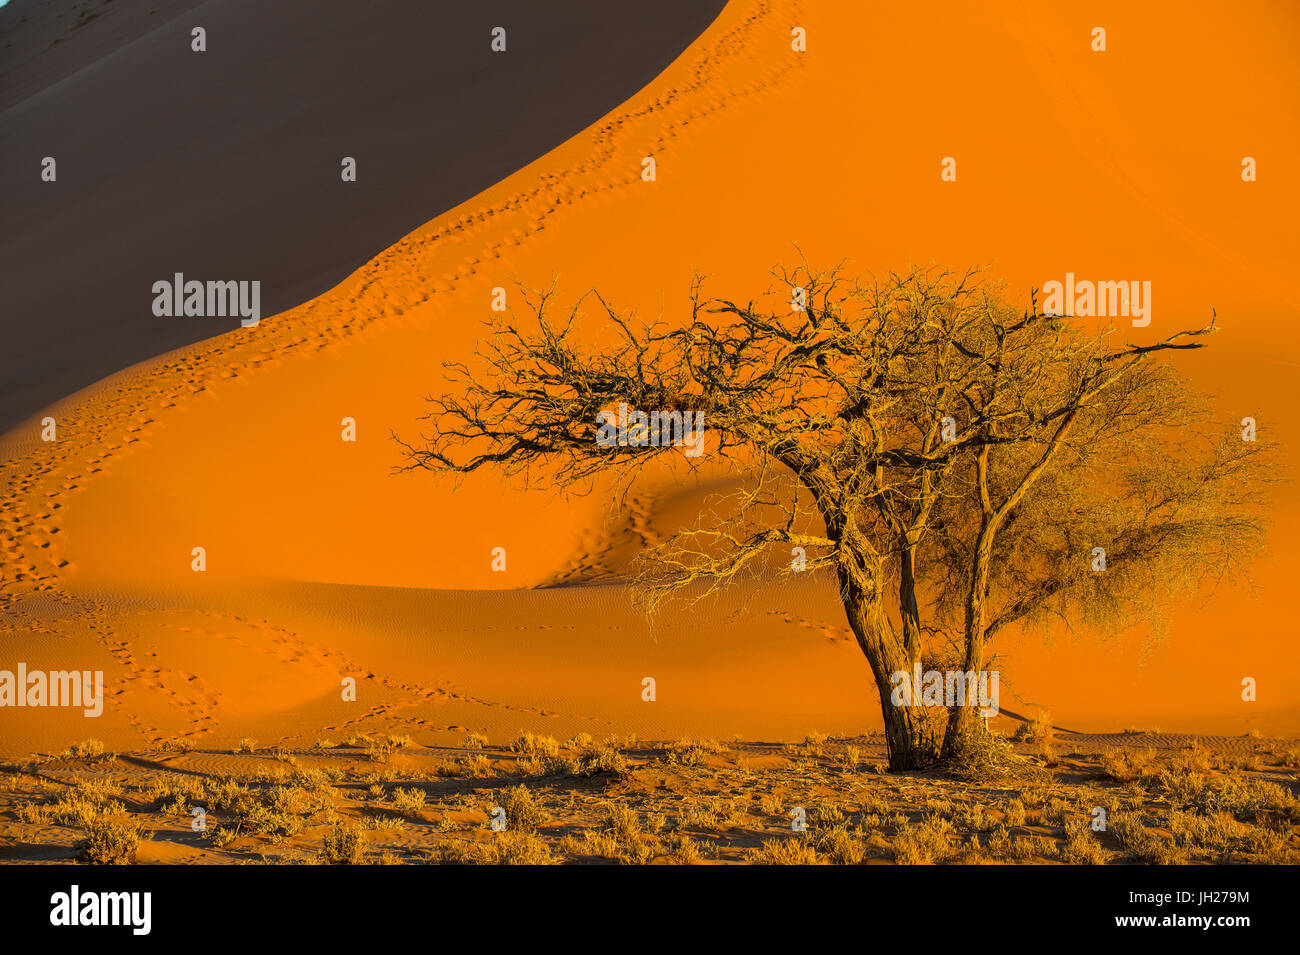 Acacia tree below the giant Sand Dune 45, Sossusvlei, Namib-Naukluft National Park, Namibia, Africa Stock Photo